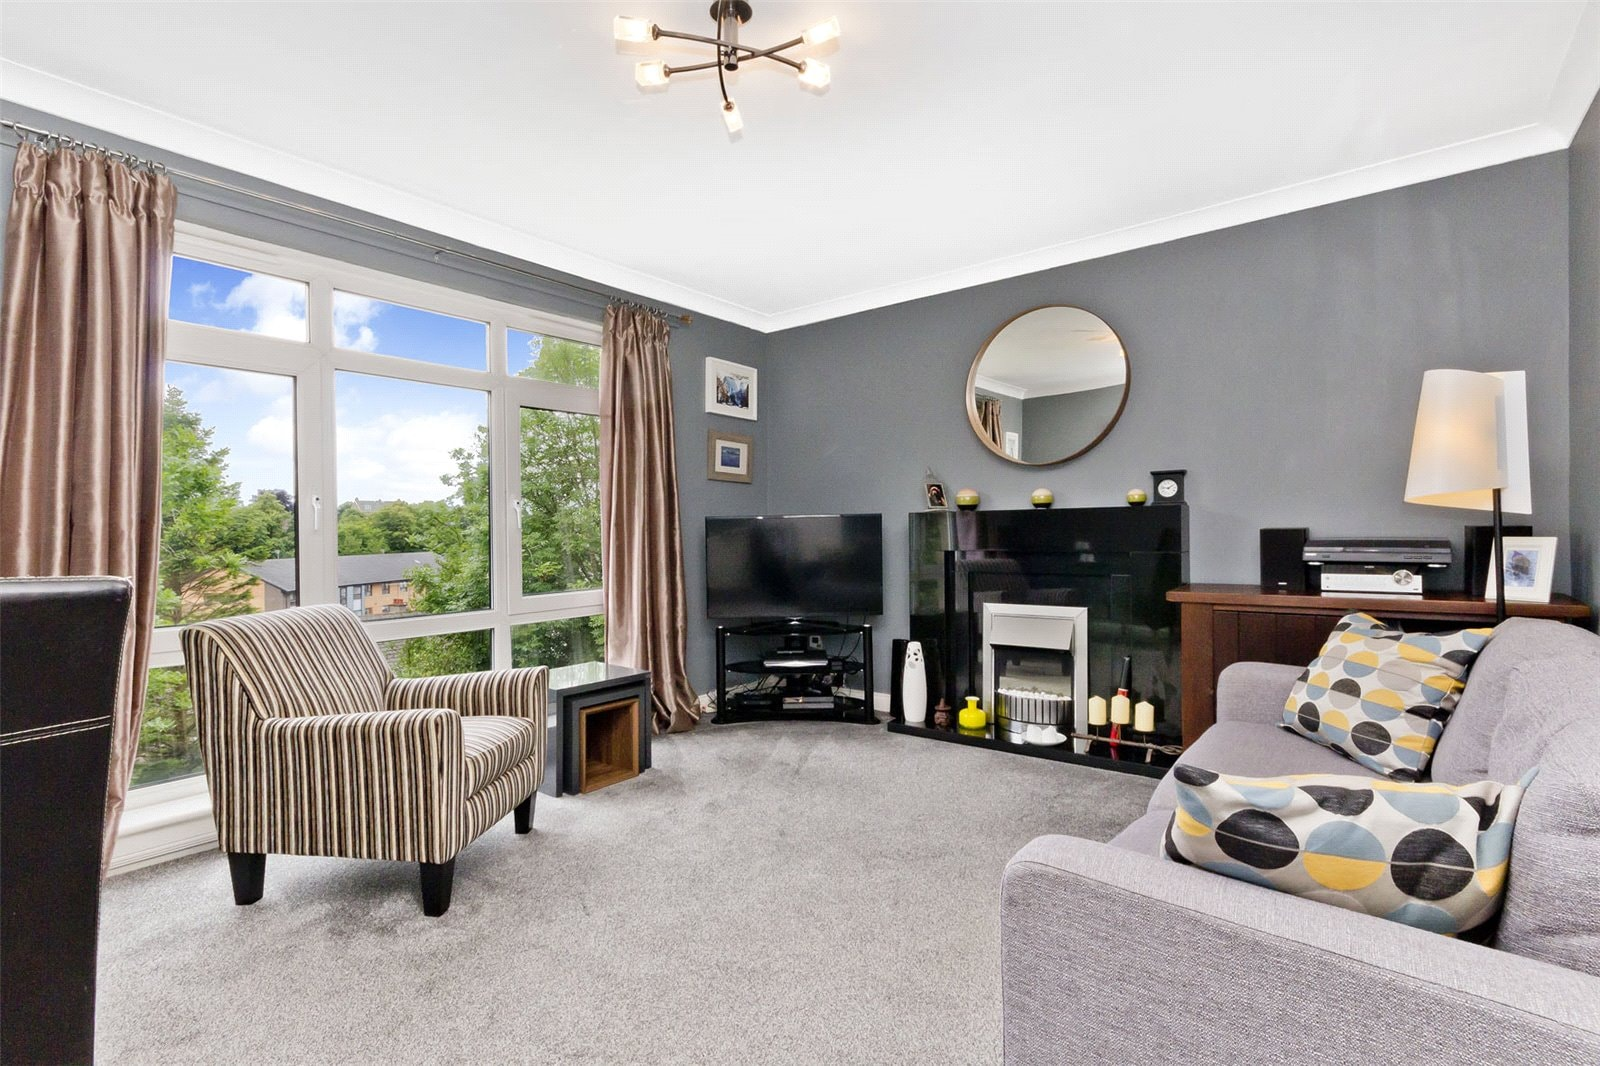 Glasgow Property of the Week: Flat 3, 184 Camphill Avenue